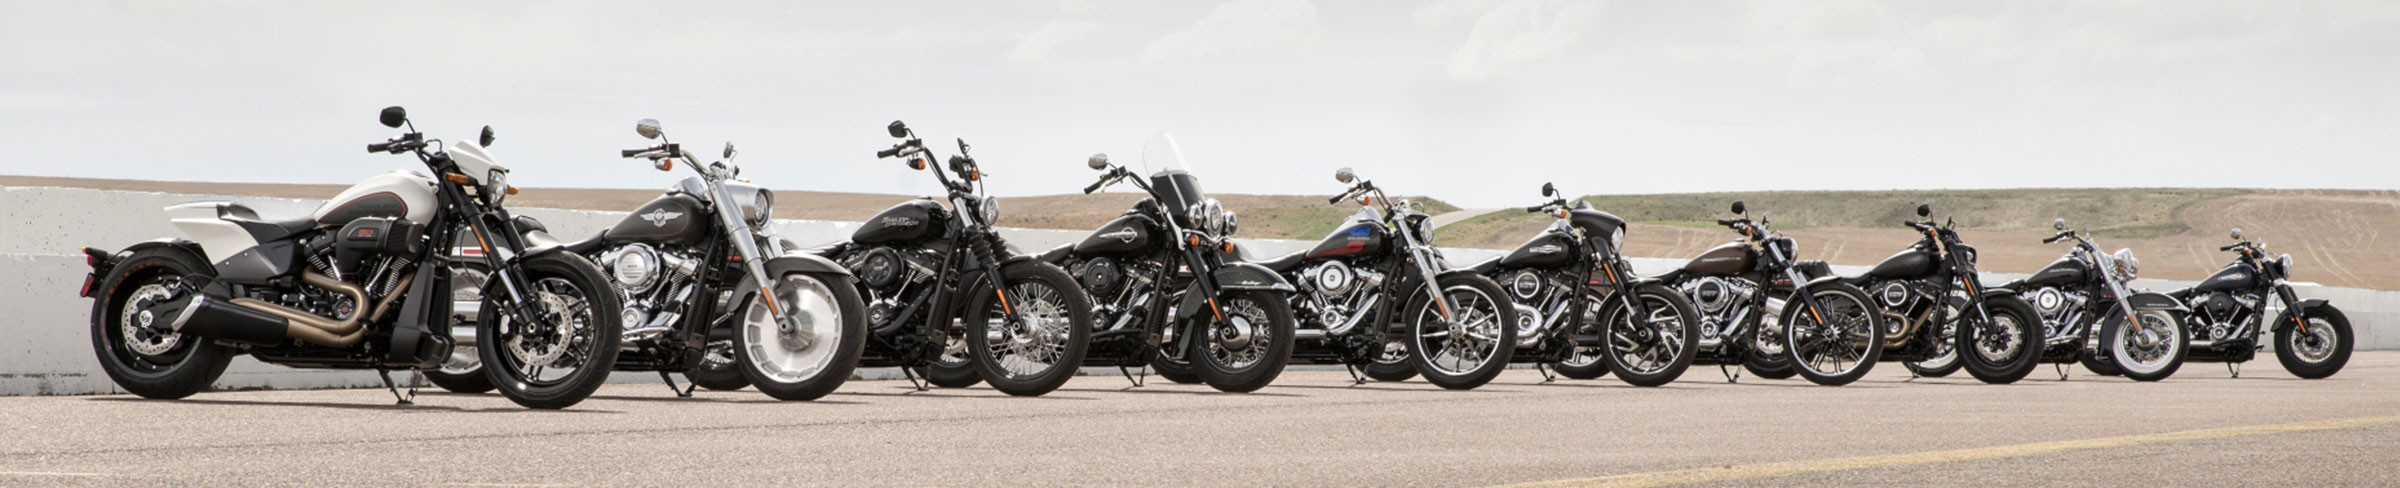 Harley Davidson Street for sale near Inver Grove Heights, MN